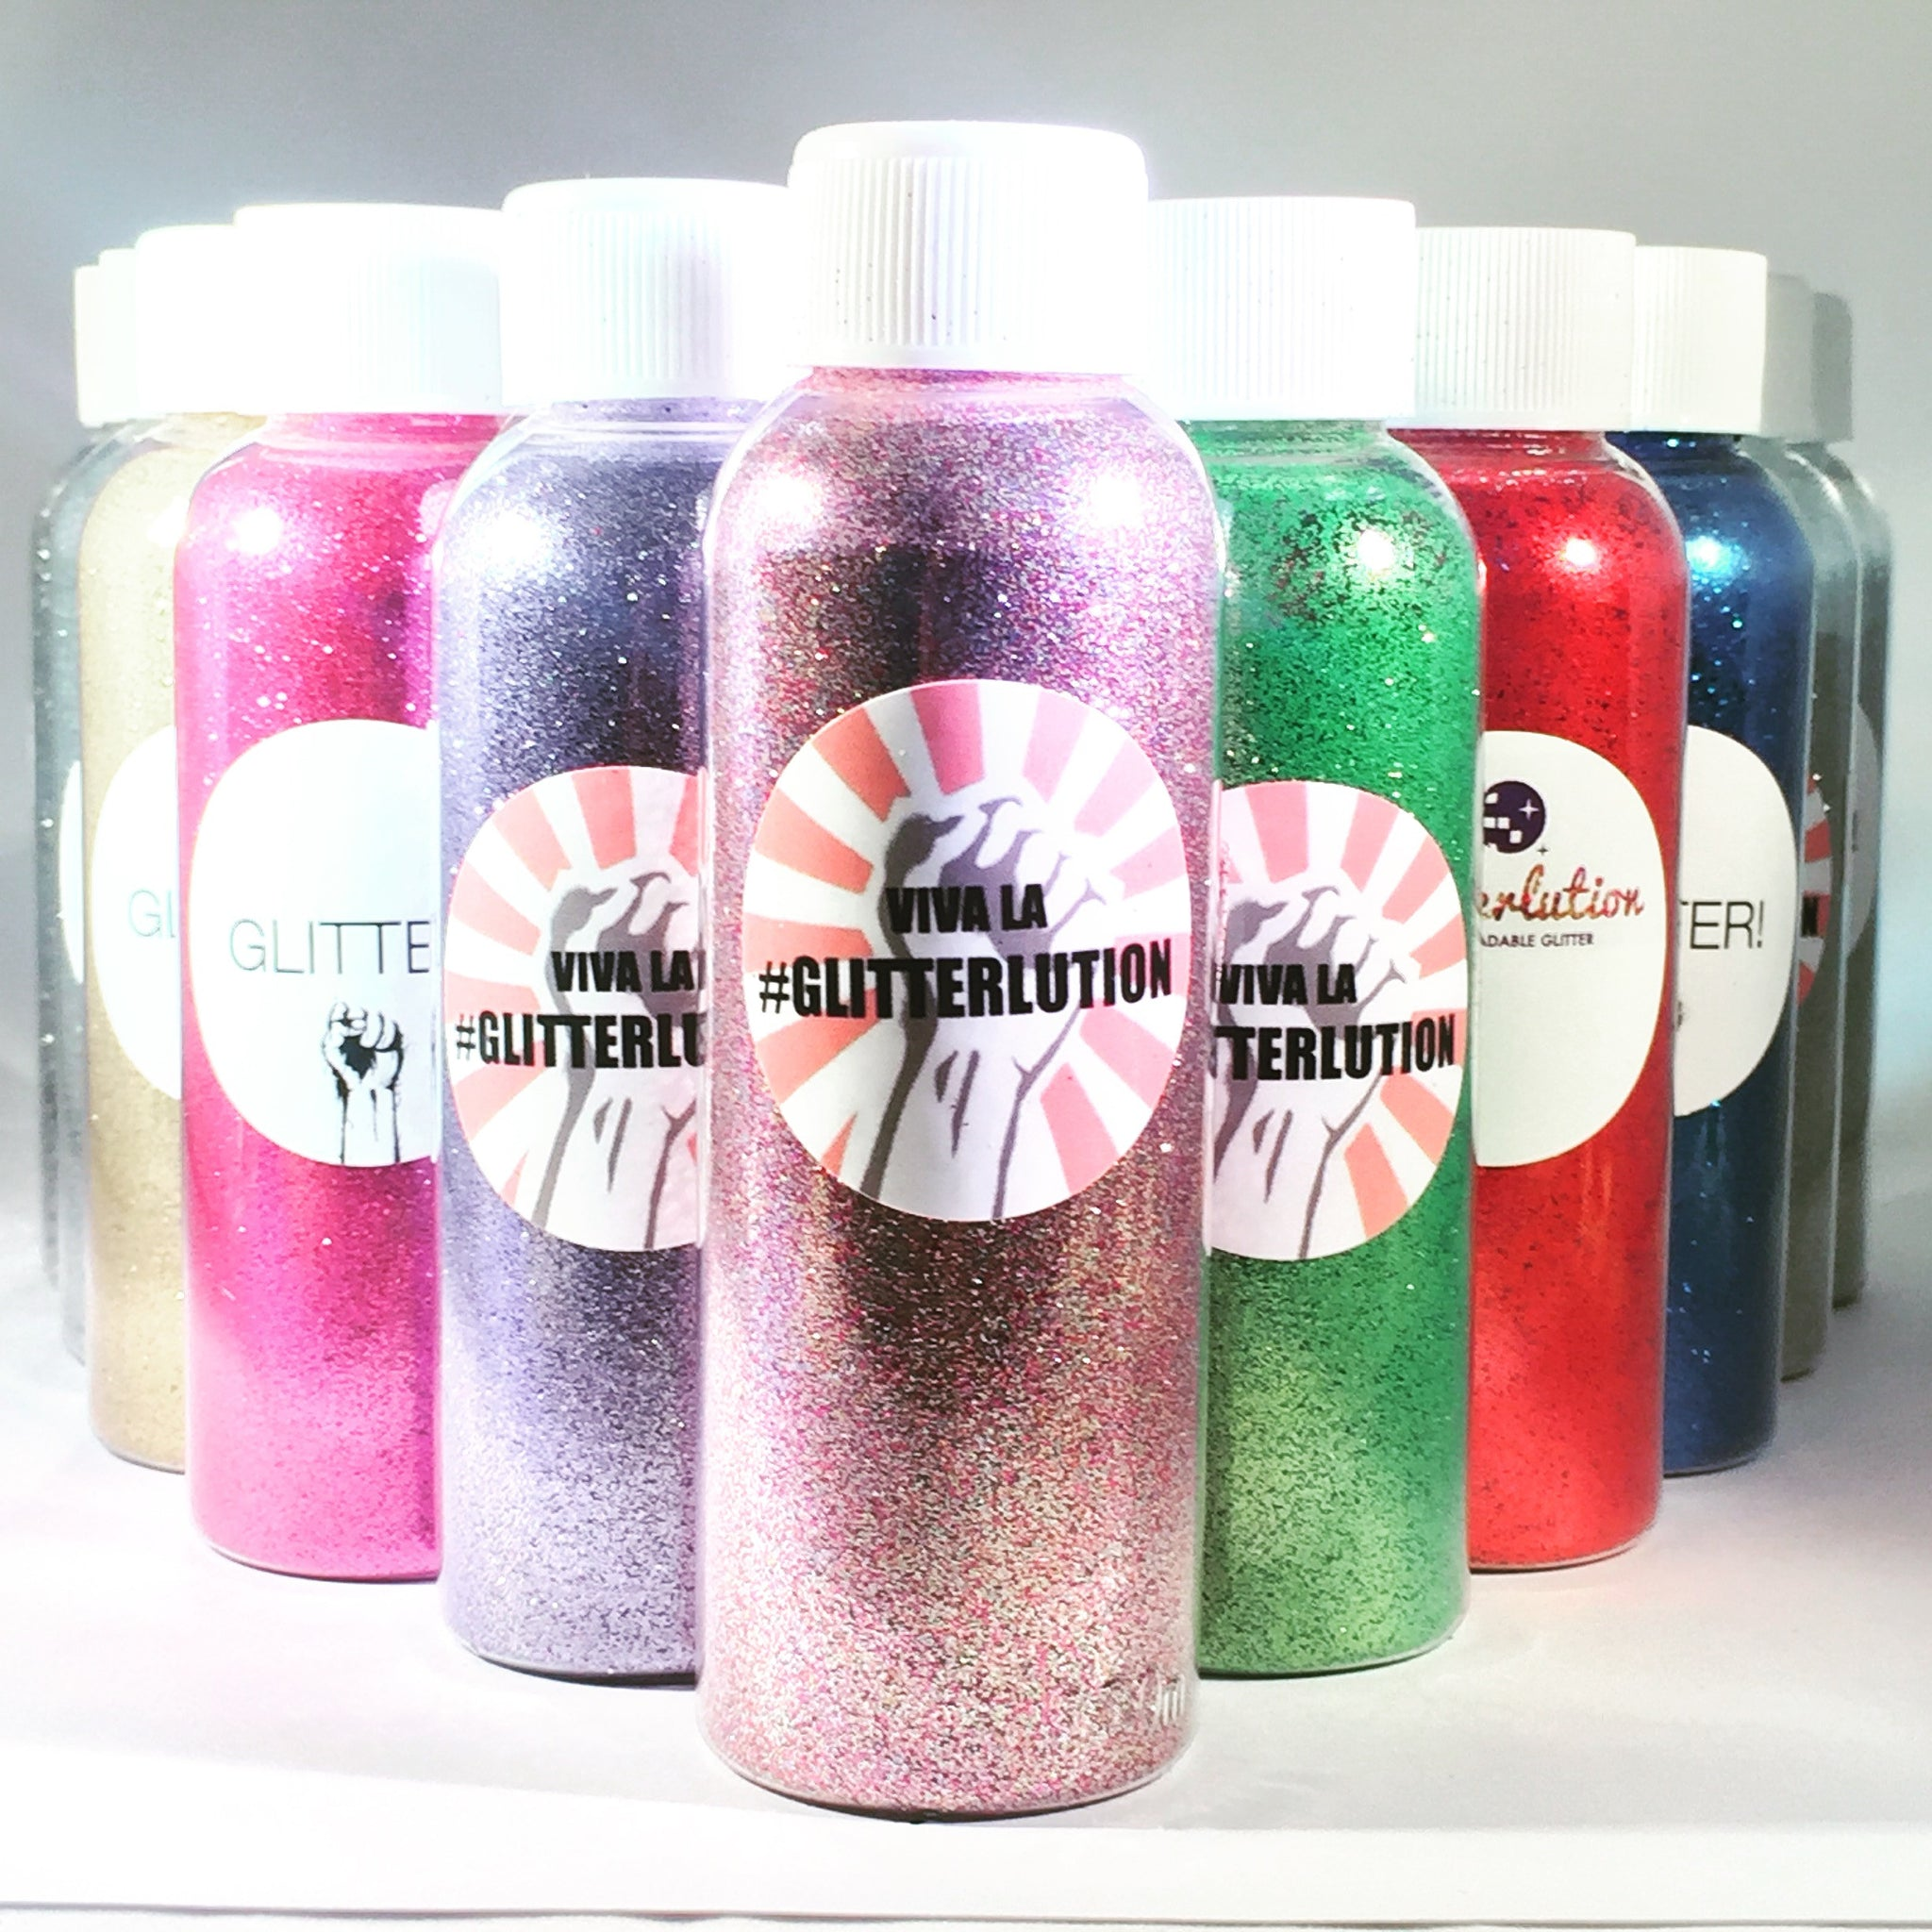 Glitterlution Biodegradable Glitter - The Essential 70 Glitter Collection